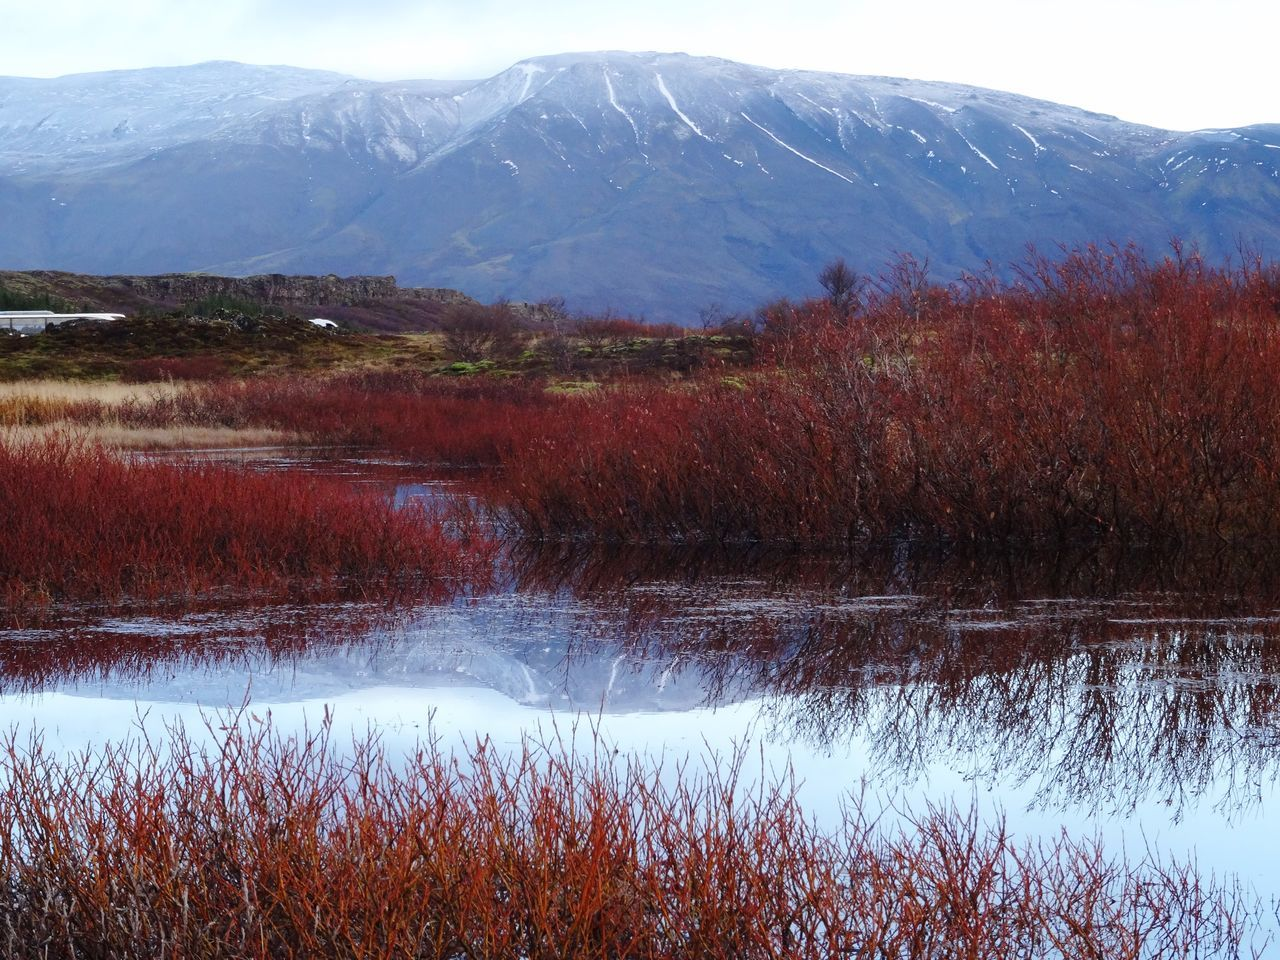 Nature Mountain Beauty In Nature Scenics Tranquil Scene Landscape Tranquility Field Growth Water No People Outdoors Day Water Reflections Grass Red Grass Lake Thingvellir Thingvellir National Park Iceland